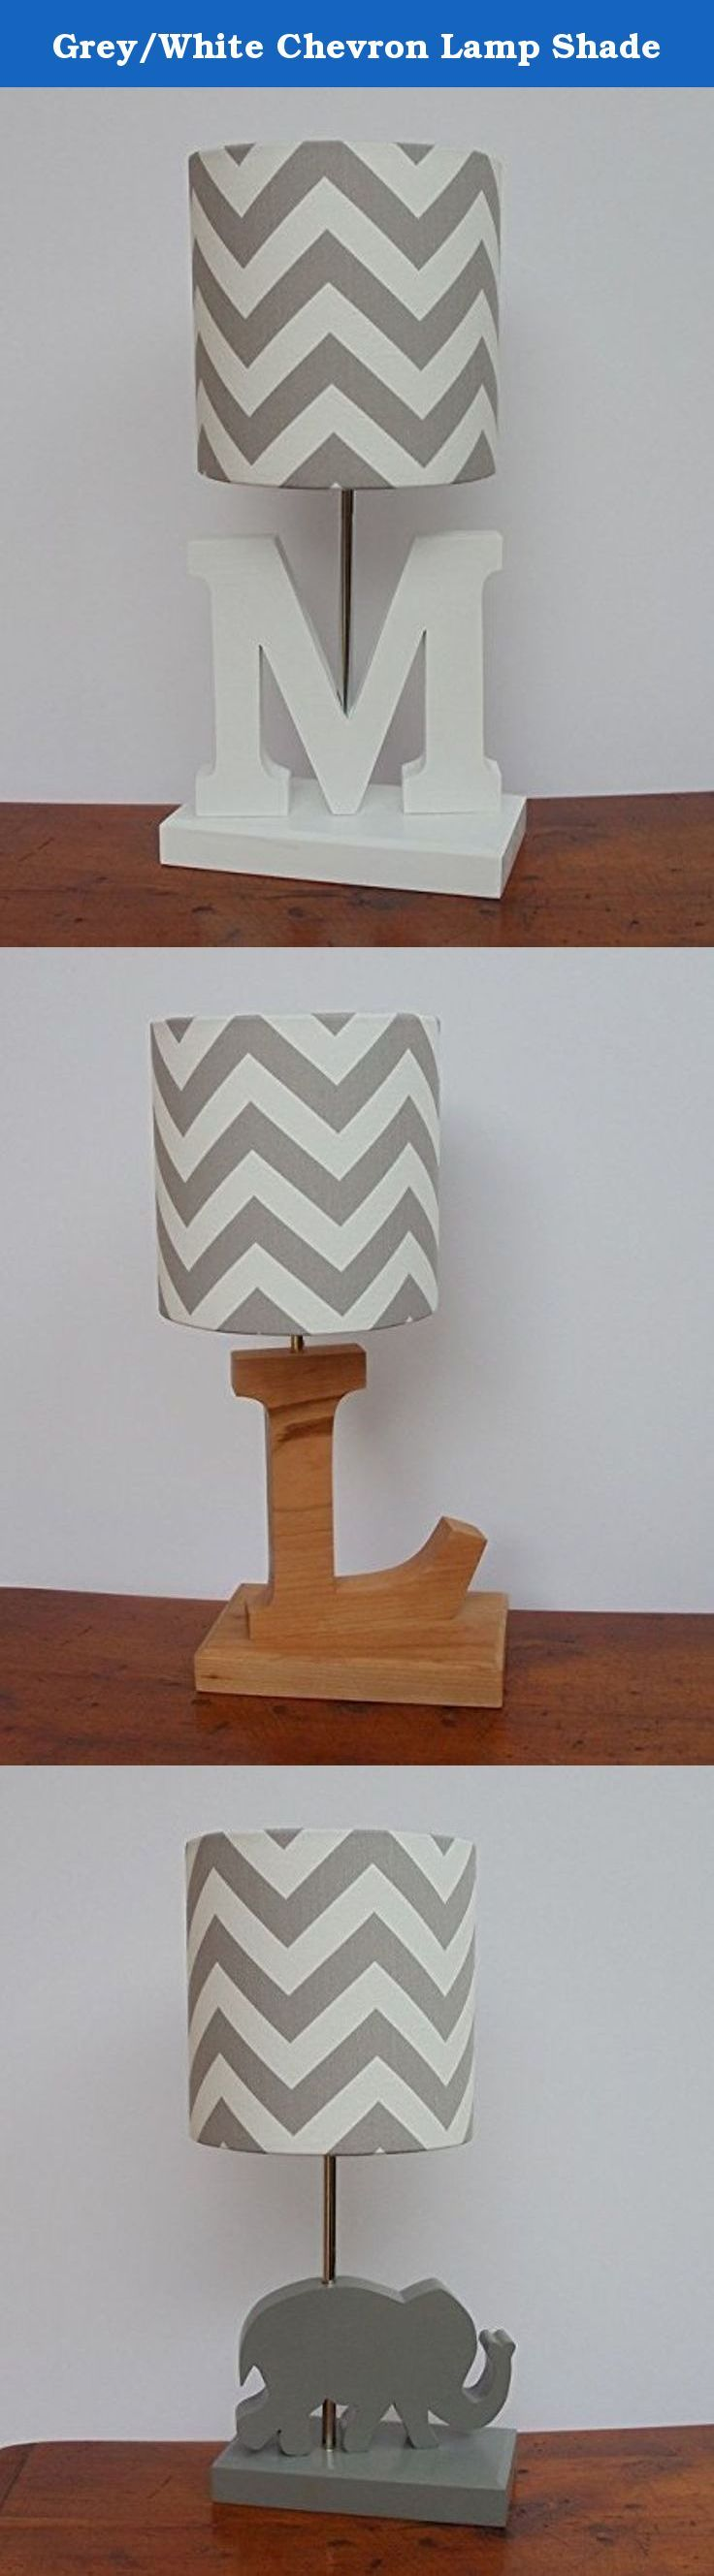 Grey/White Chevron Lamp Shade. This listing is for a small handmade grey/white chevron drum lamp shade. Made from high quality Premier Prints cotton fabric. Great for nursery or child's bedroom. **THIS LISTING IS FOR THE LAMP SHADE ONLY.** However, we also sell the lamp bases pictured above, separately. Please visit our Amazon store to view our lamp base listings. Lamp Shade clips onto any standard incandescent light bulb.